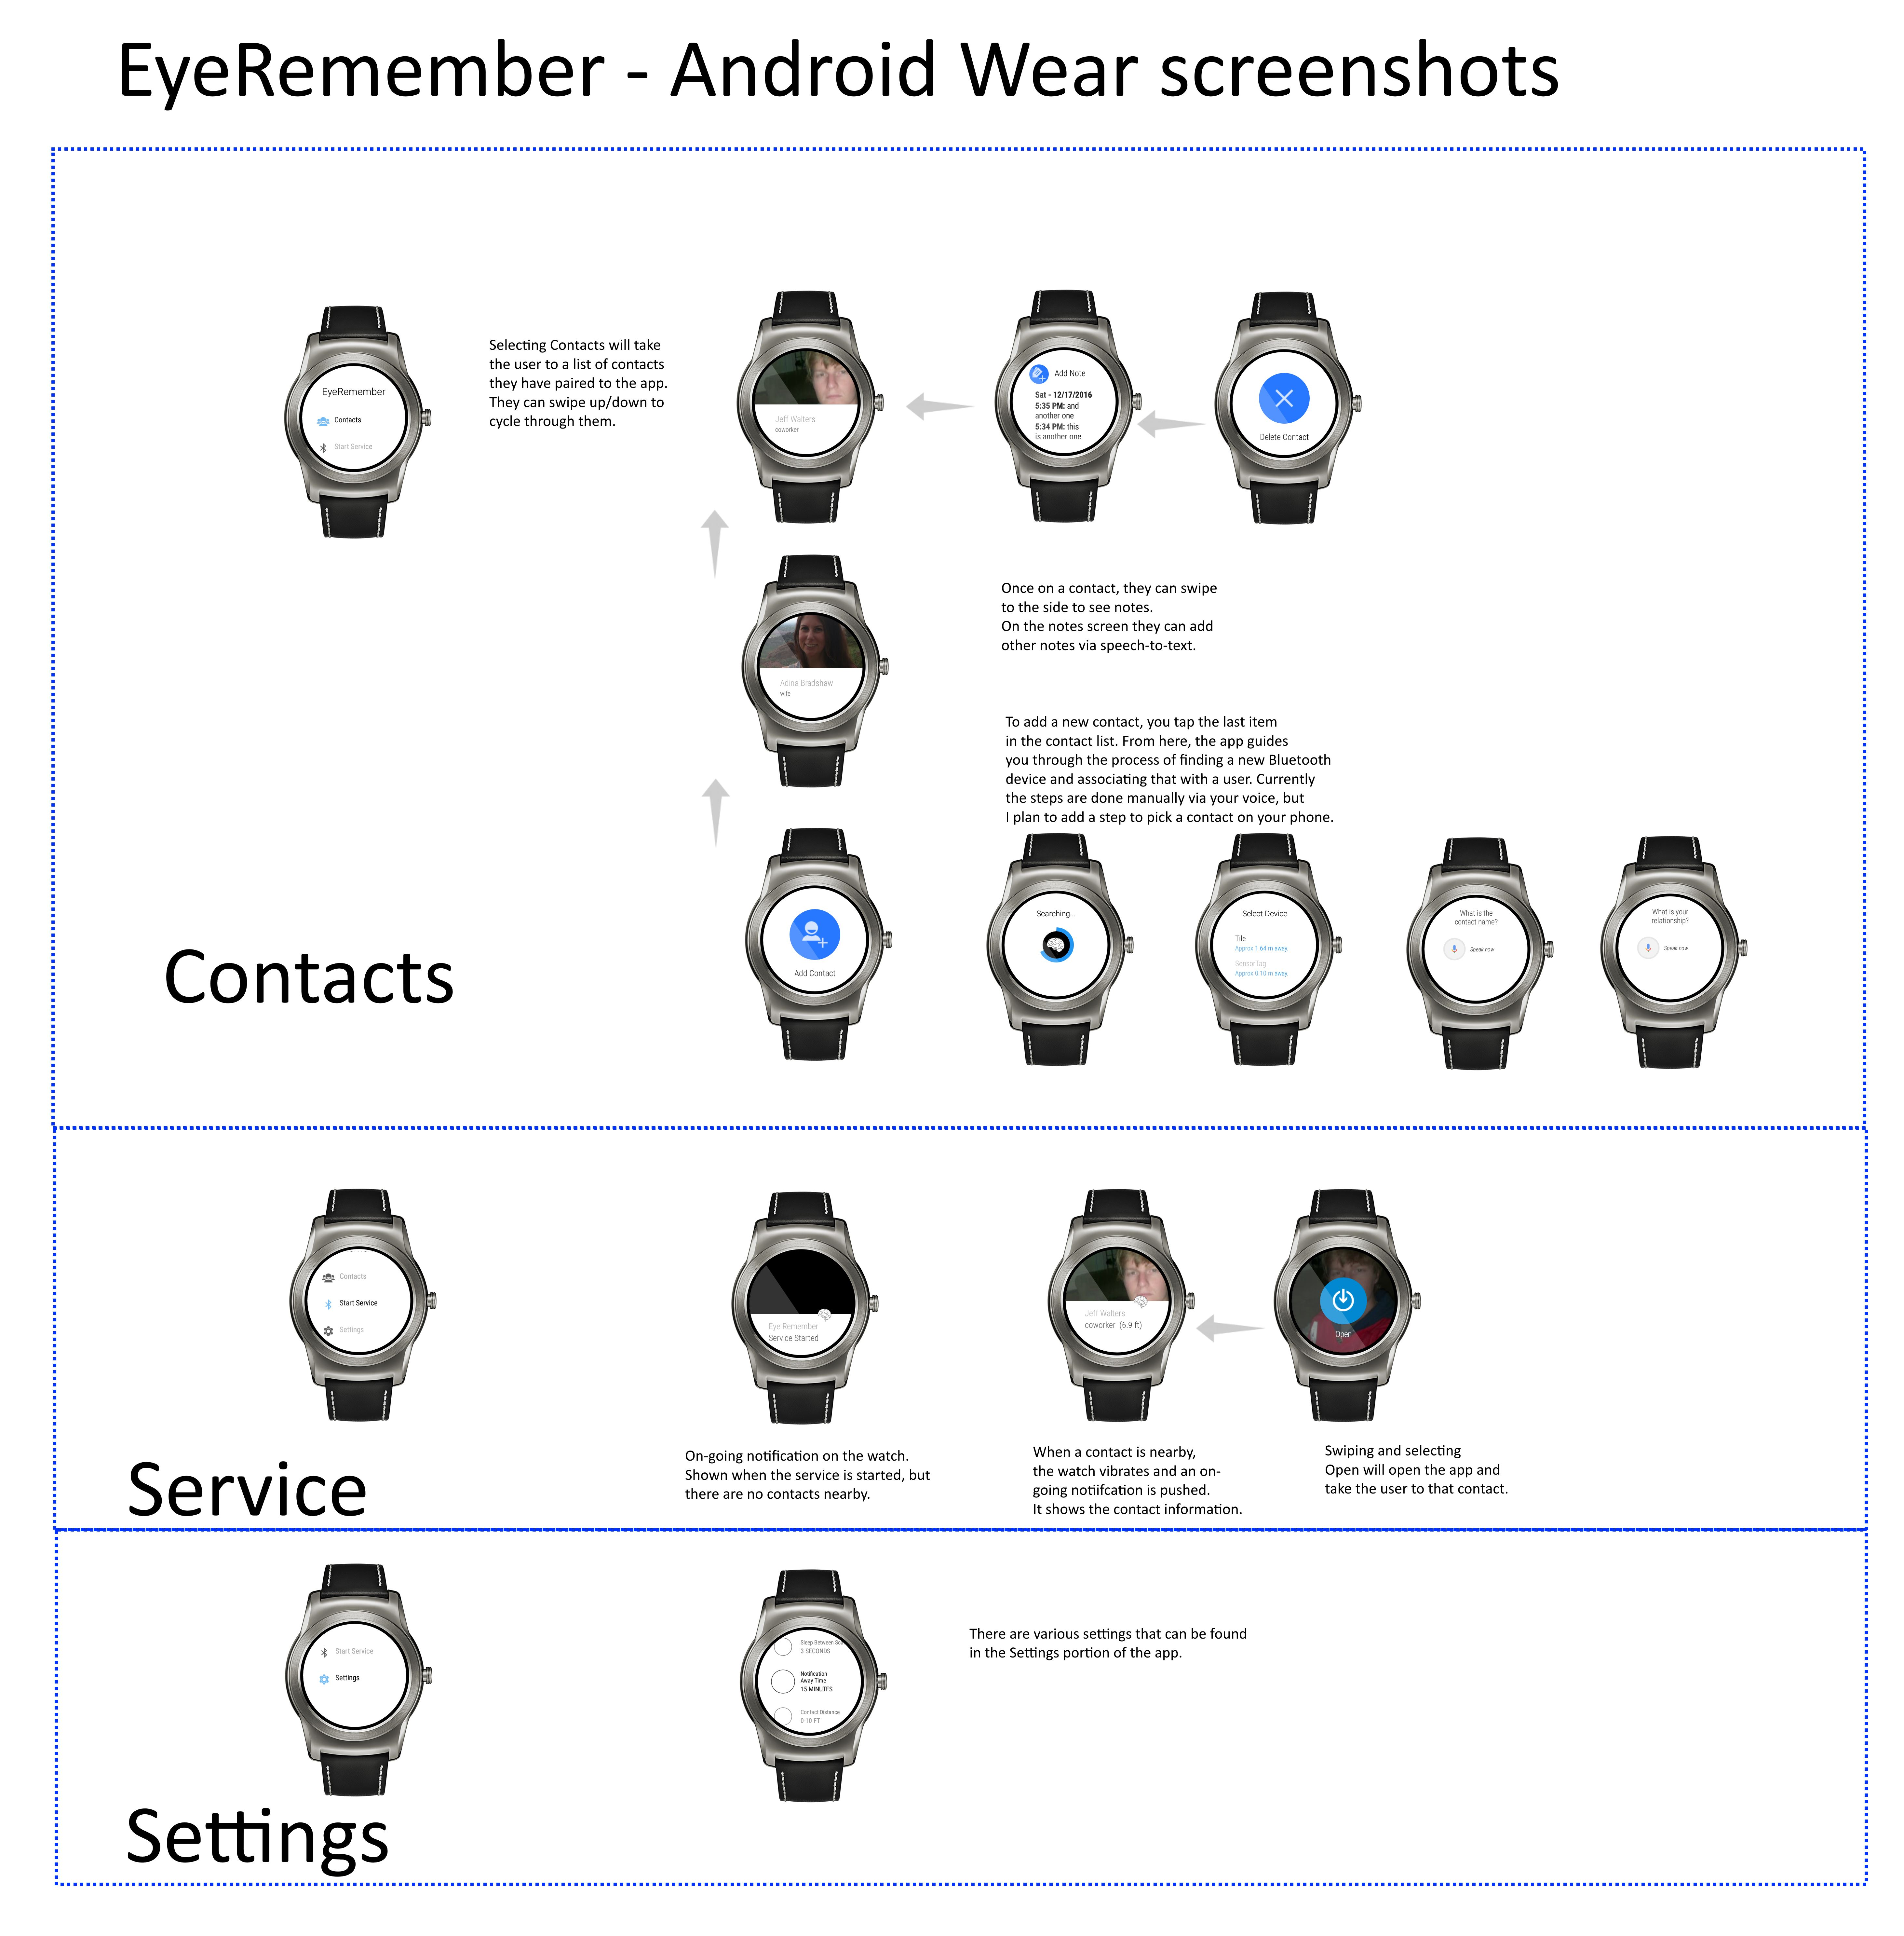 Screenshots of EyeRemember for Android Wear